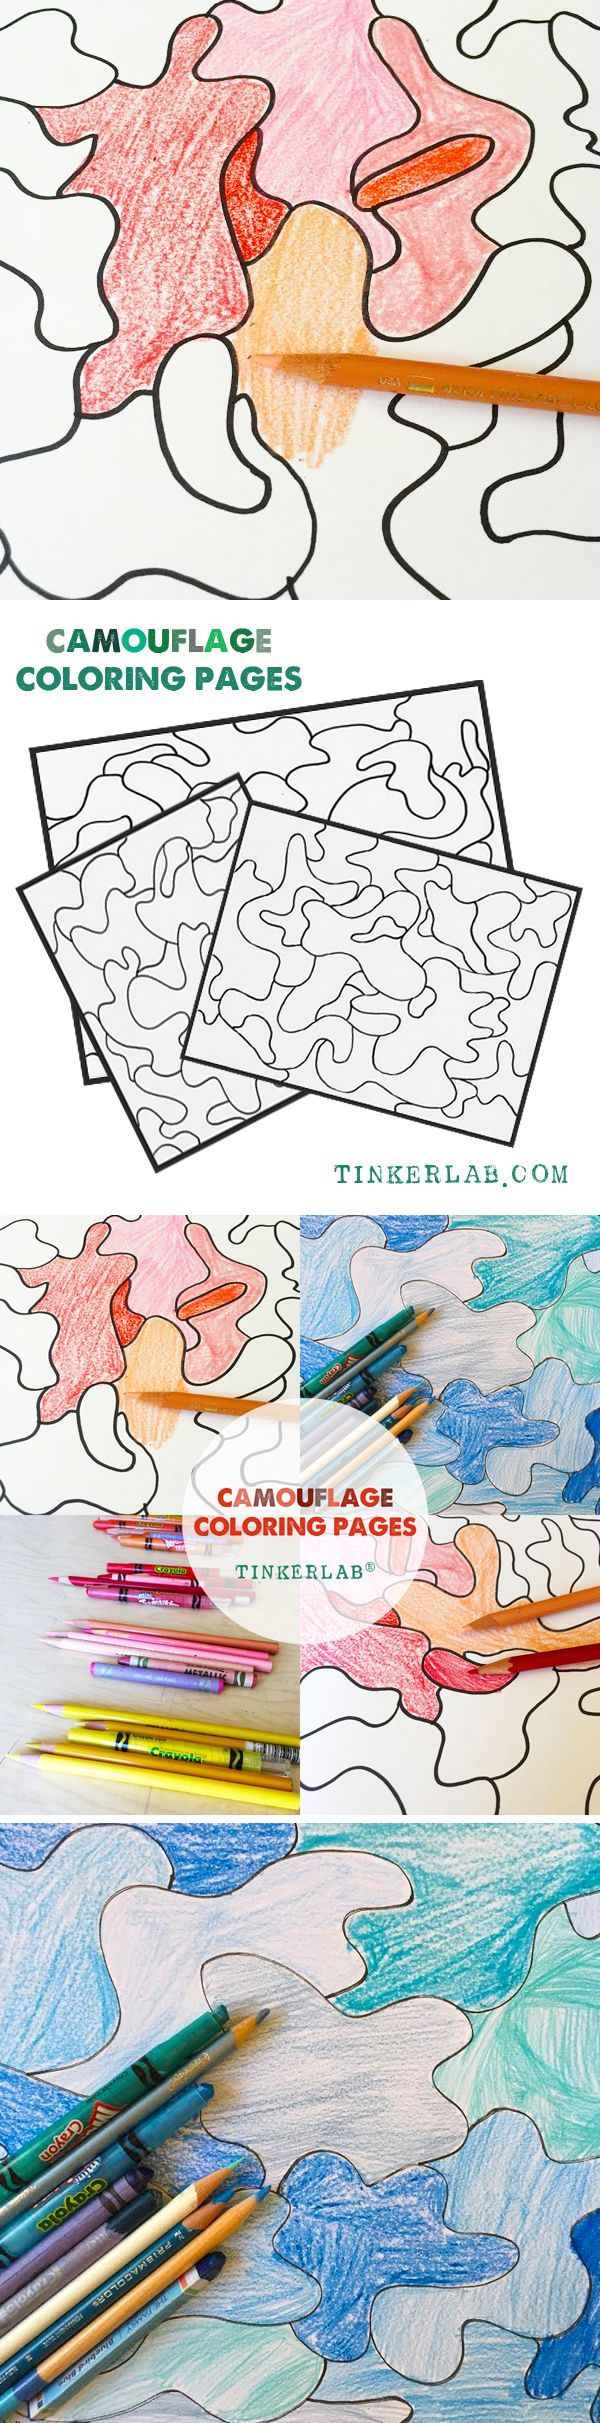 kids camo coloring pages - photo#32